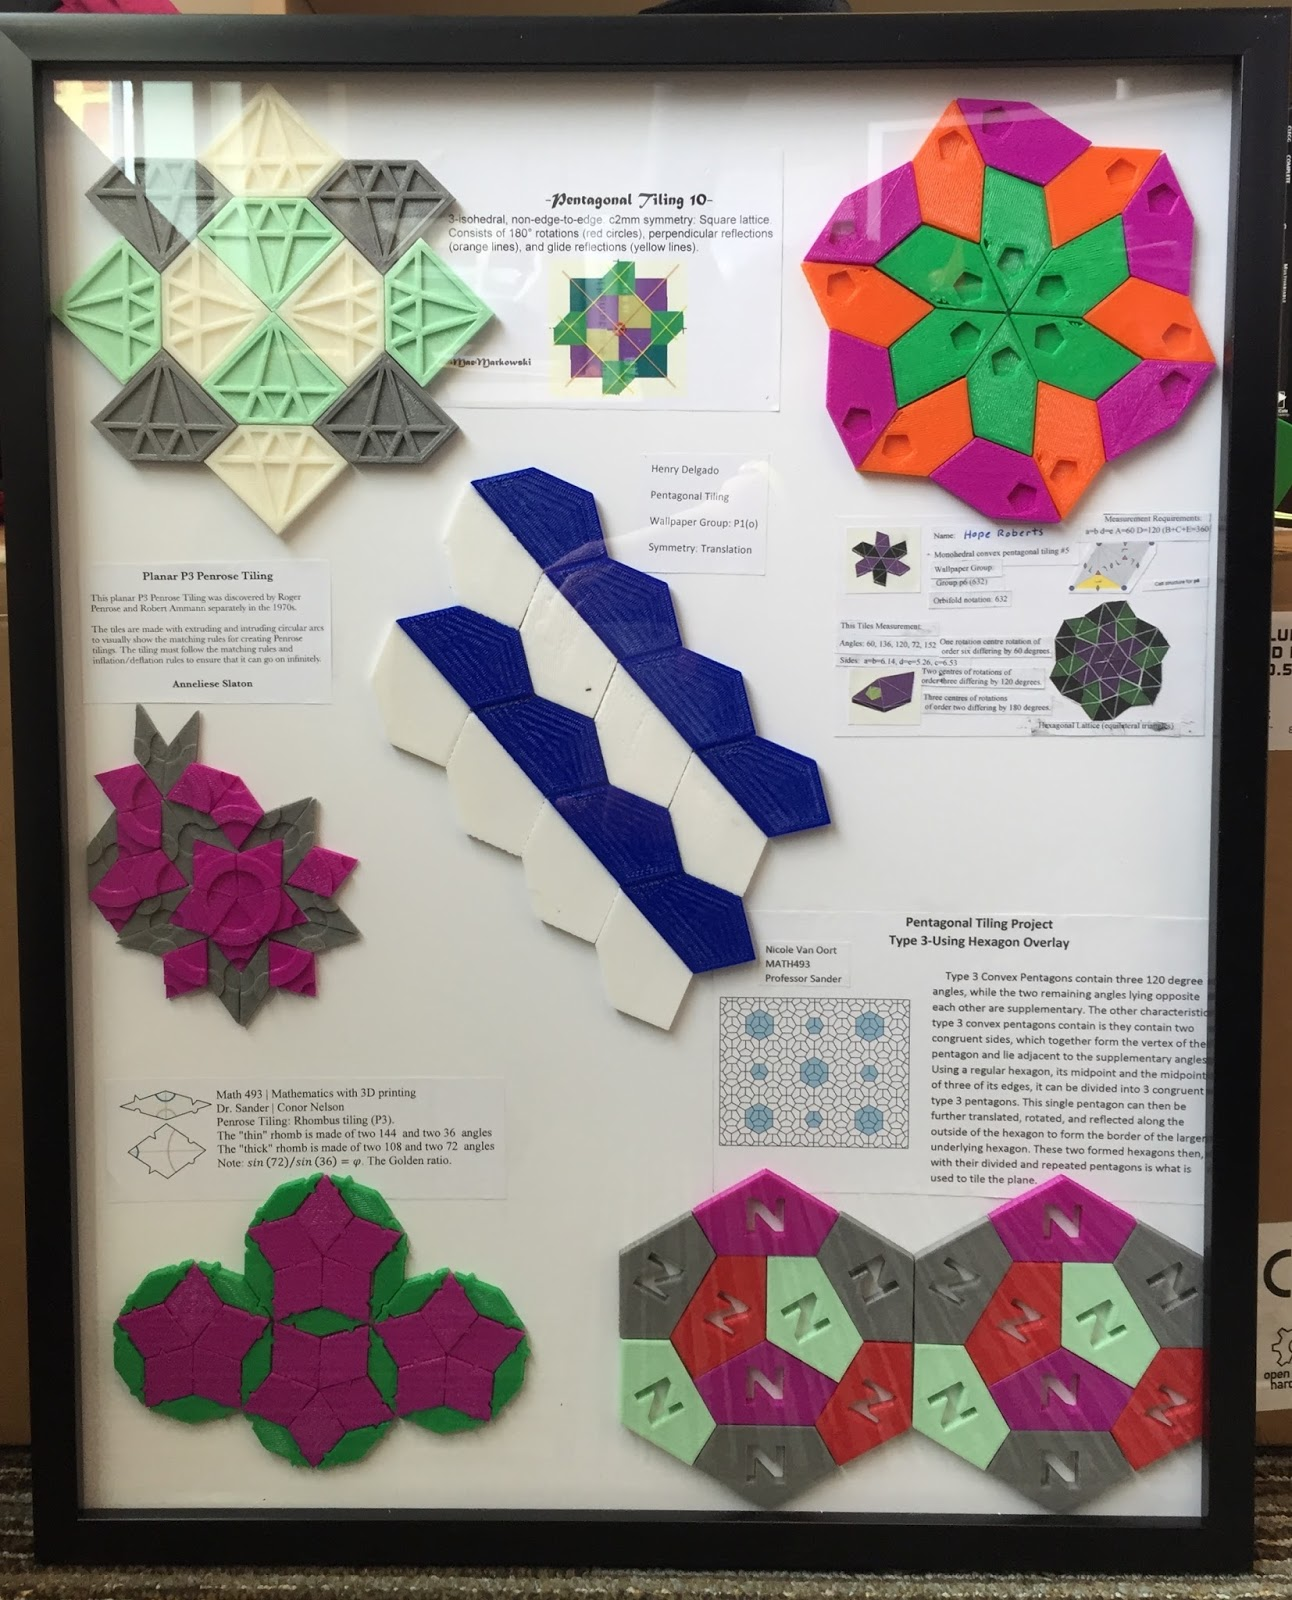 Color printing gmu - Pentagon Tilings And Penrose Tilings There Are Only 15 Known Pentagons Which Can Be Used As A Single Tile In A Repeatable Periodic Fashion Throughout The